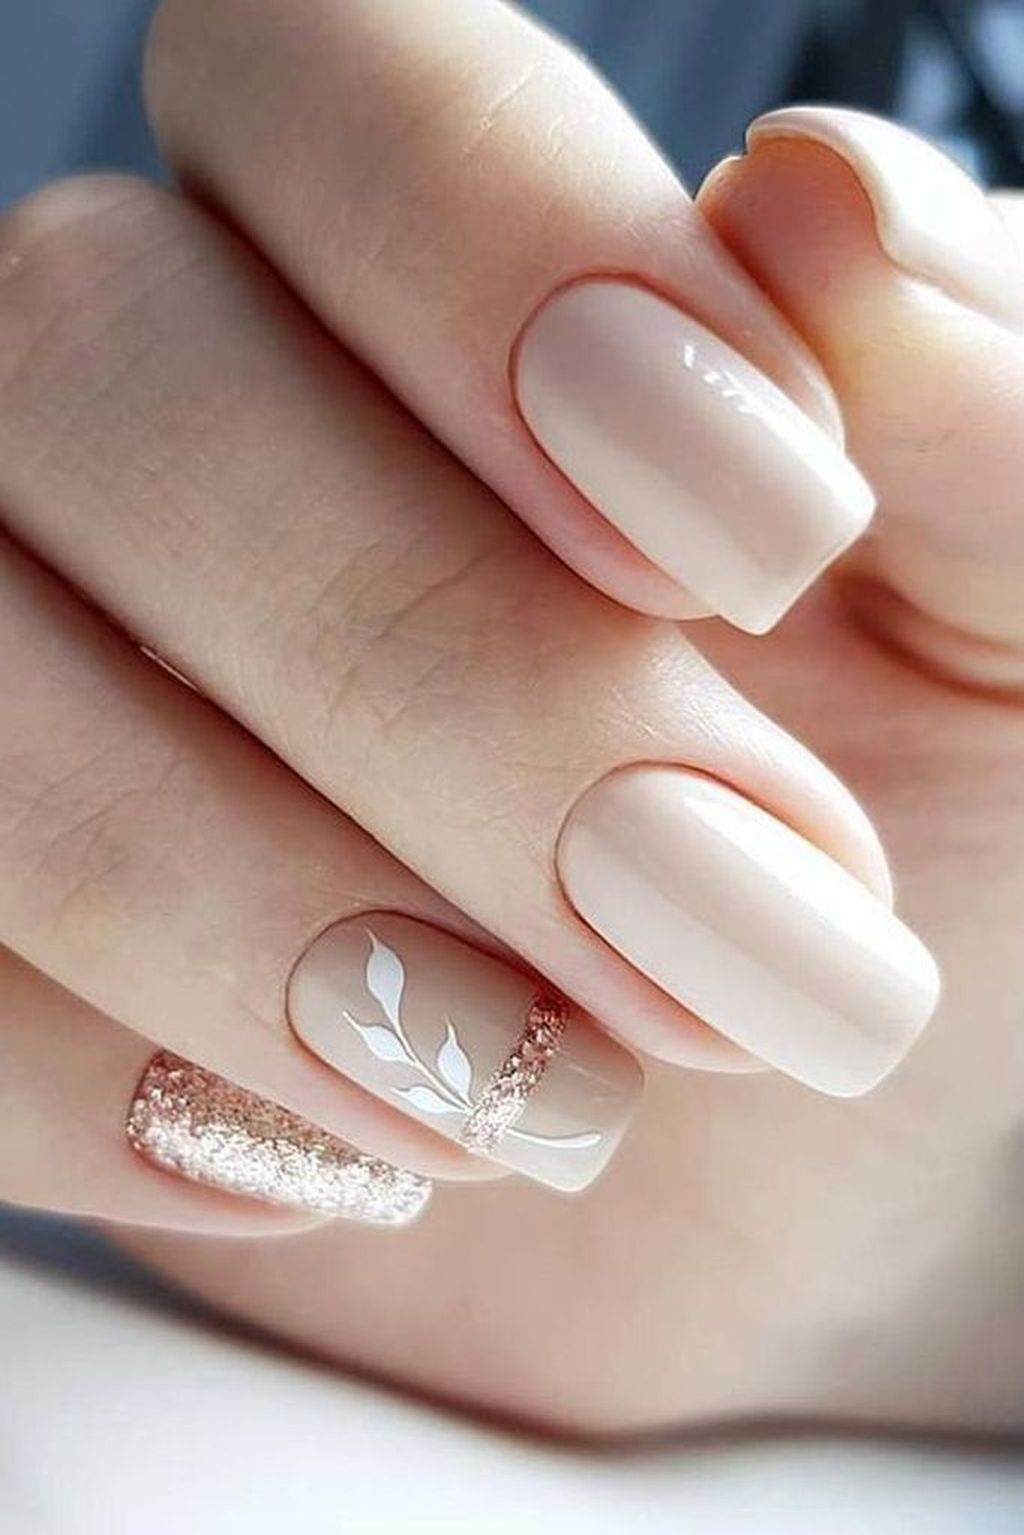 20+ Attractive Nail Designs Ideas That Are So Perfect For